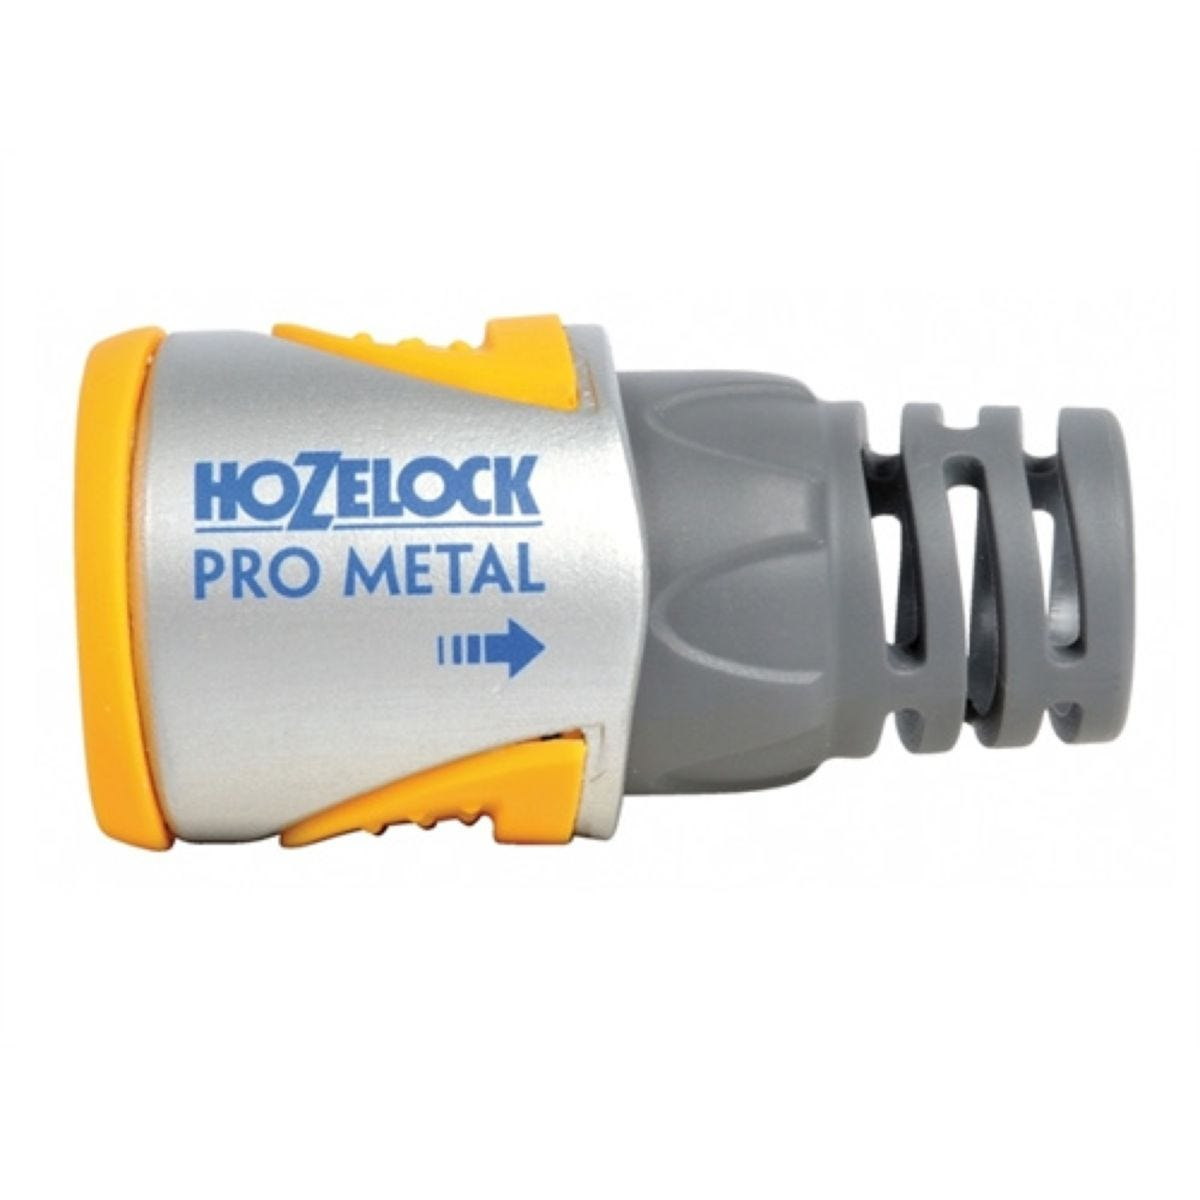 Hozelock Hose End Connector - 12.5mm & 15mm